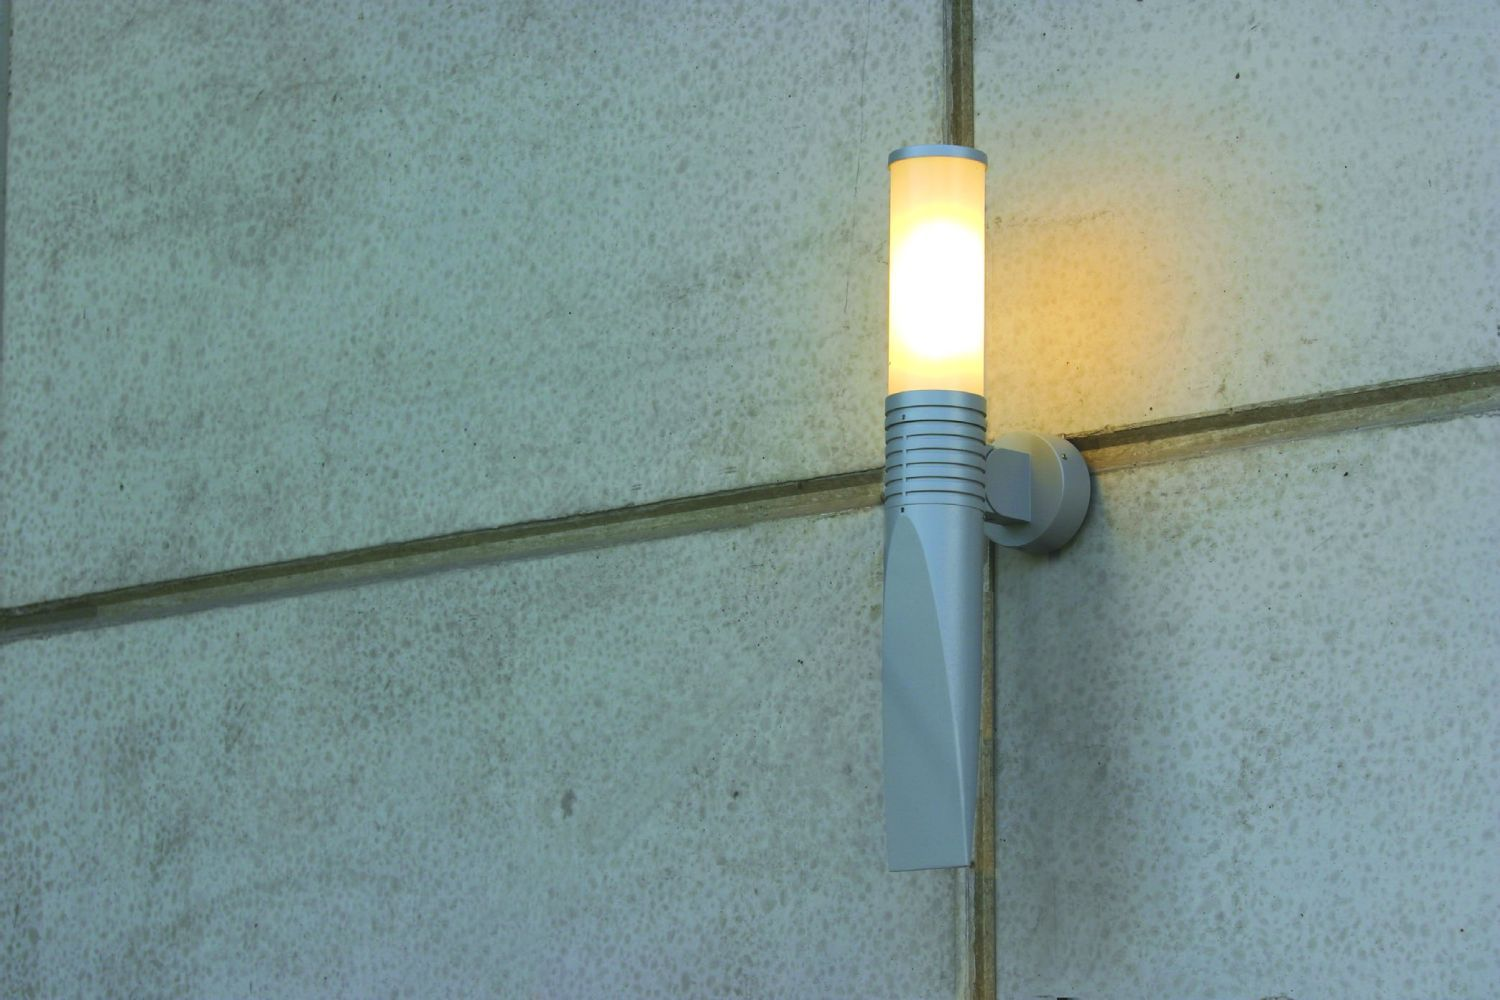 Artisan Roger Pradier - Olympic I - Lighting Appliances - Outdoor